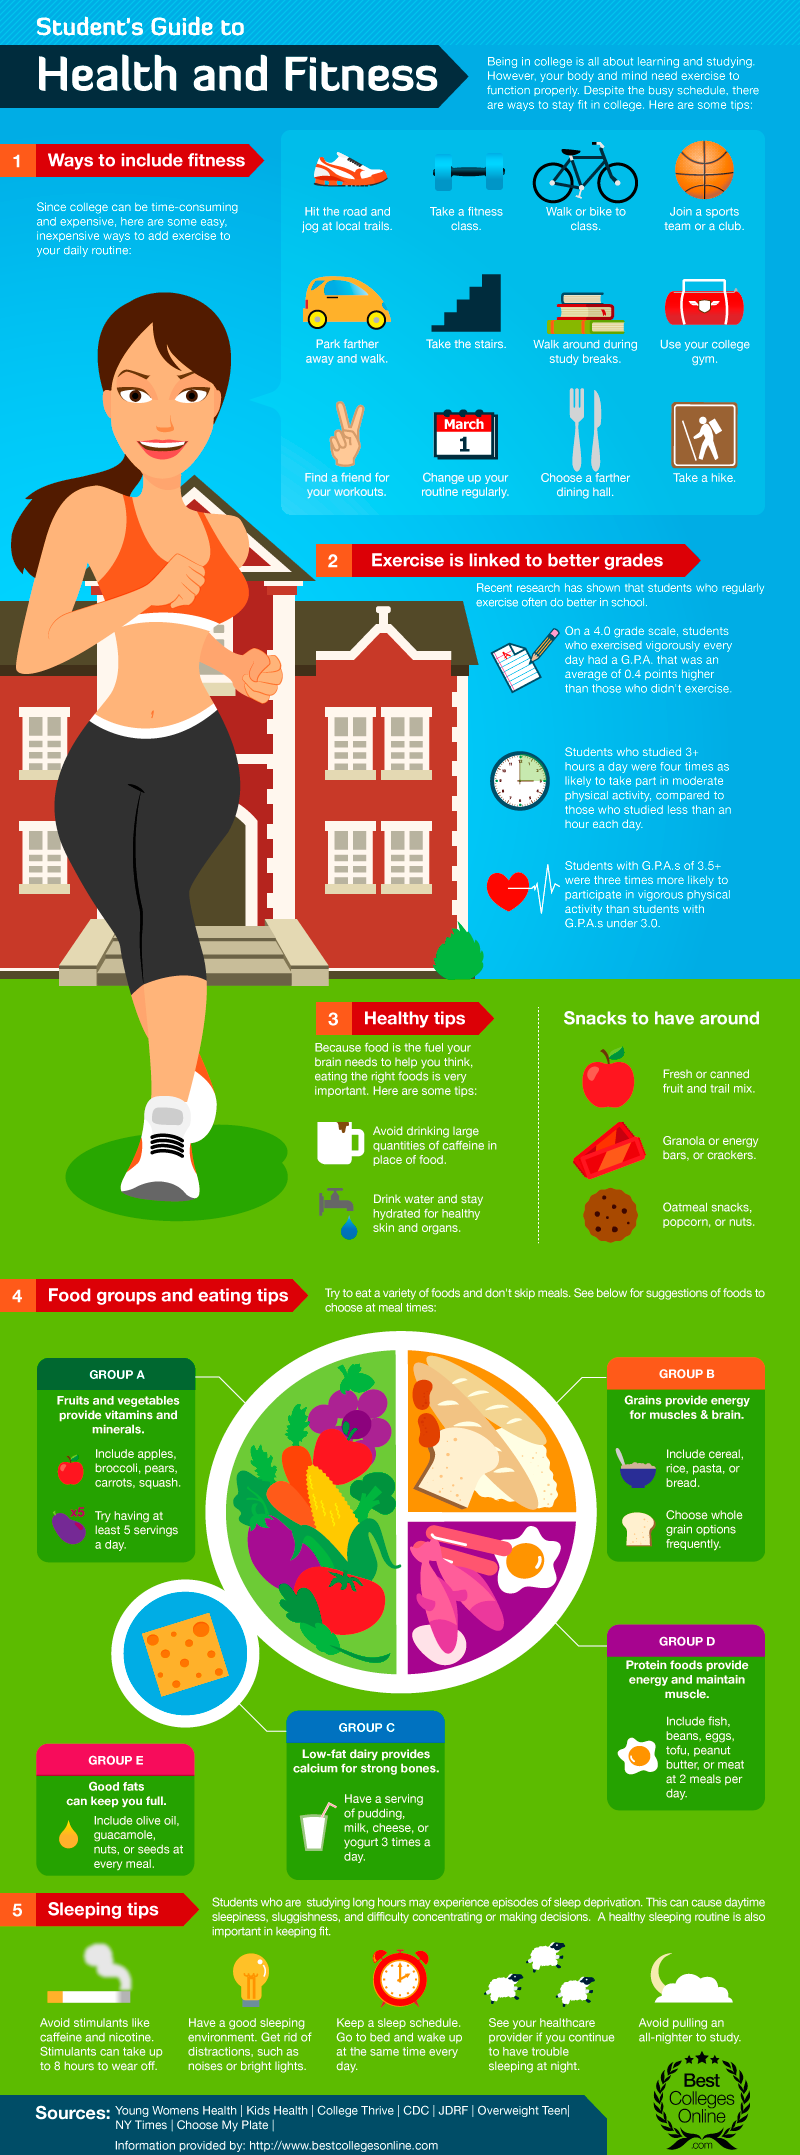 Help your kids stay in shape even when they're off to college - Student's Guide to #Health and #Fitness bodelogix.com